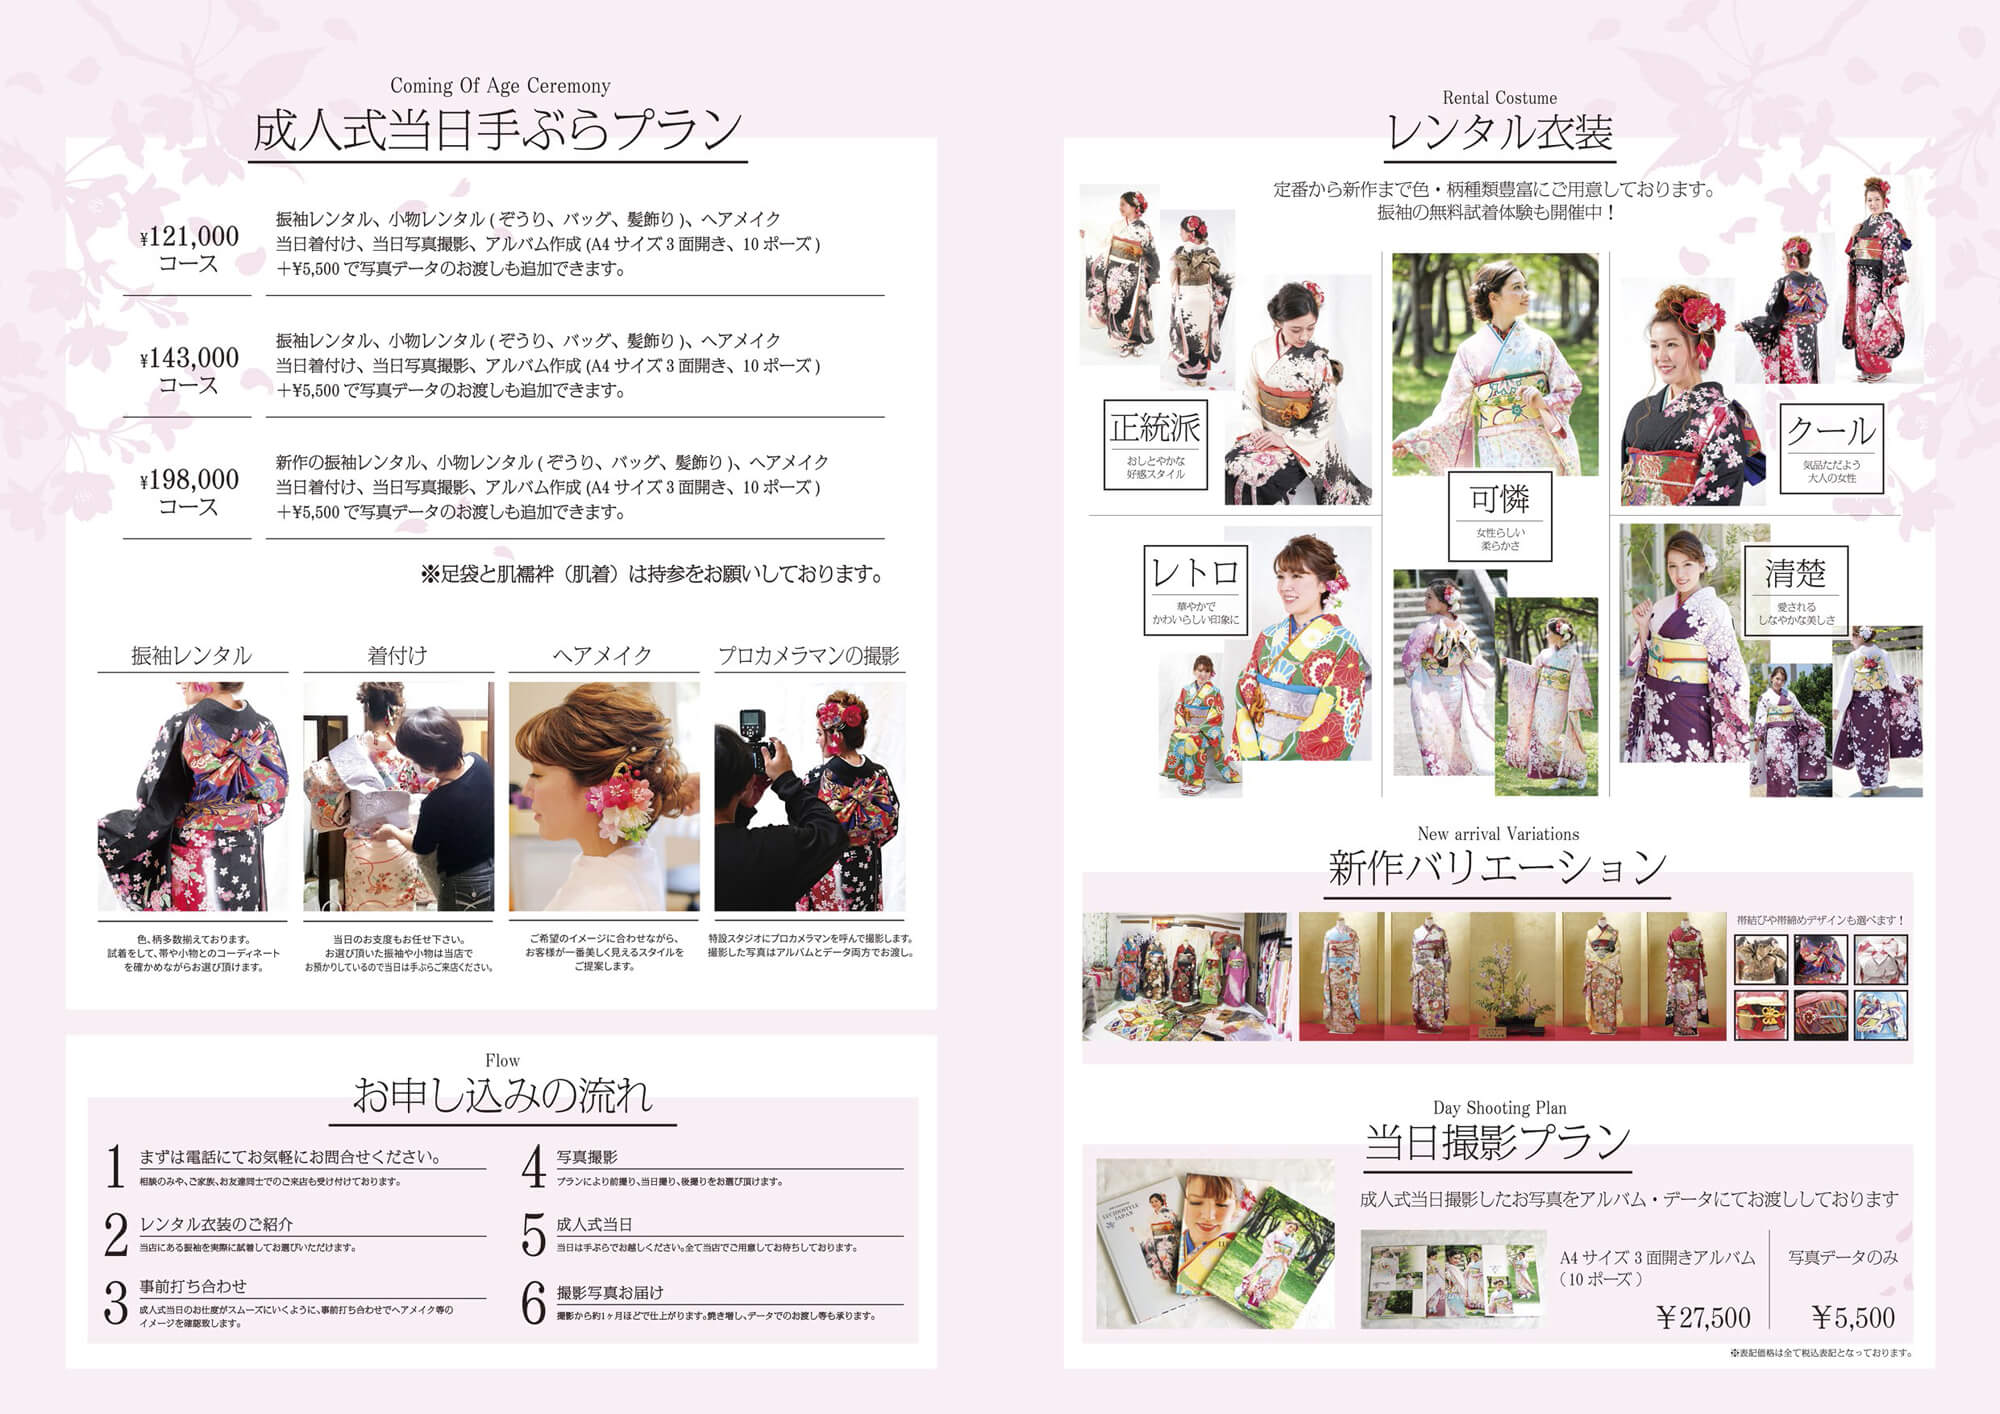 coming-of-age-ceremony-plan-20210408-full